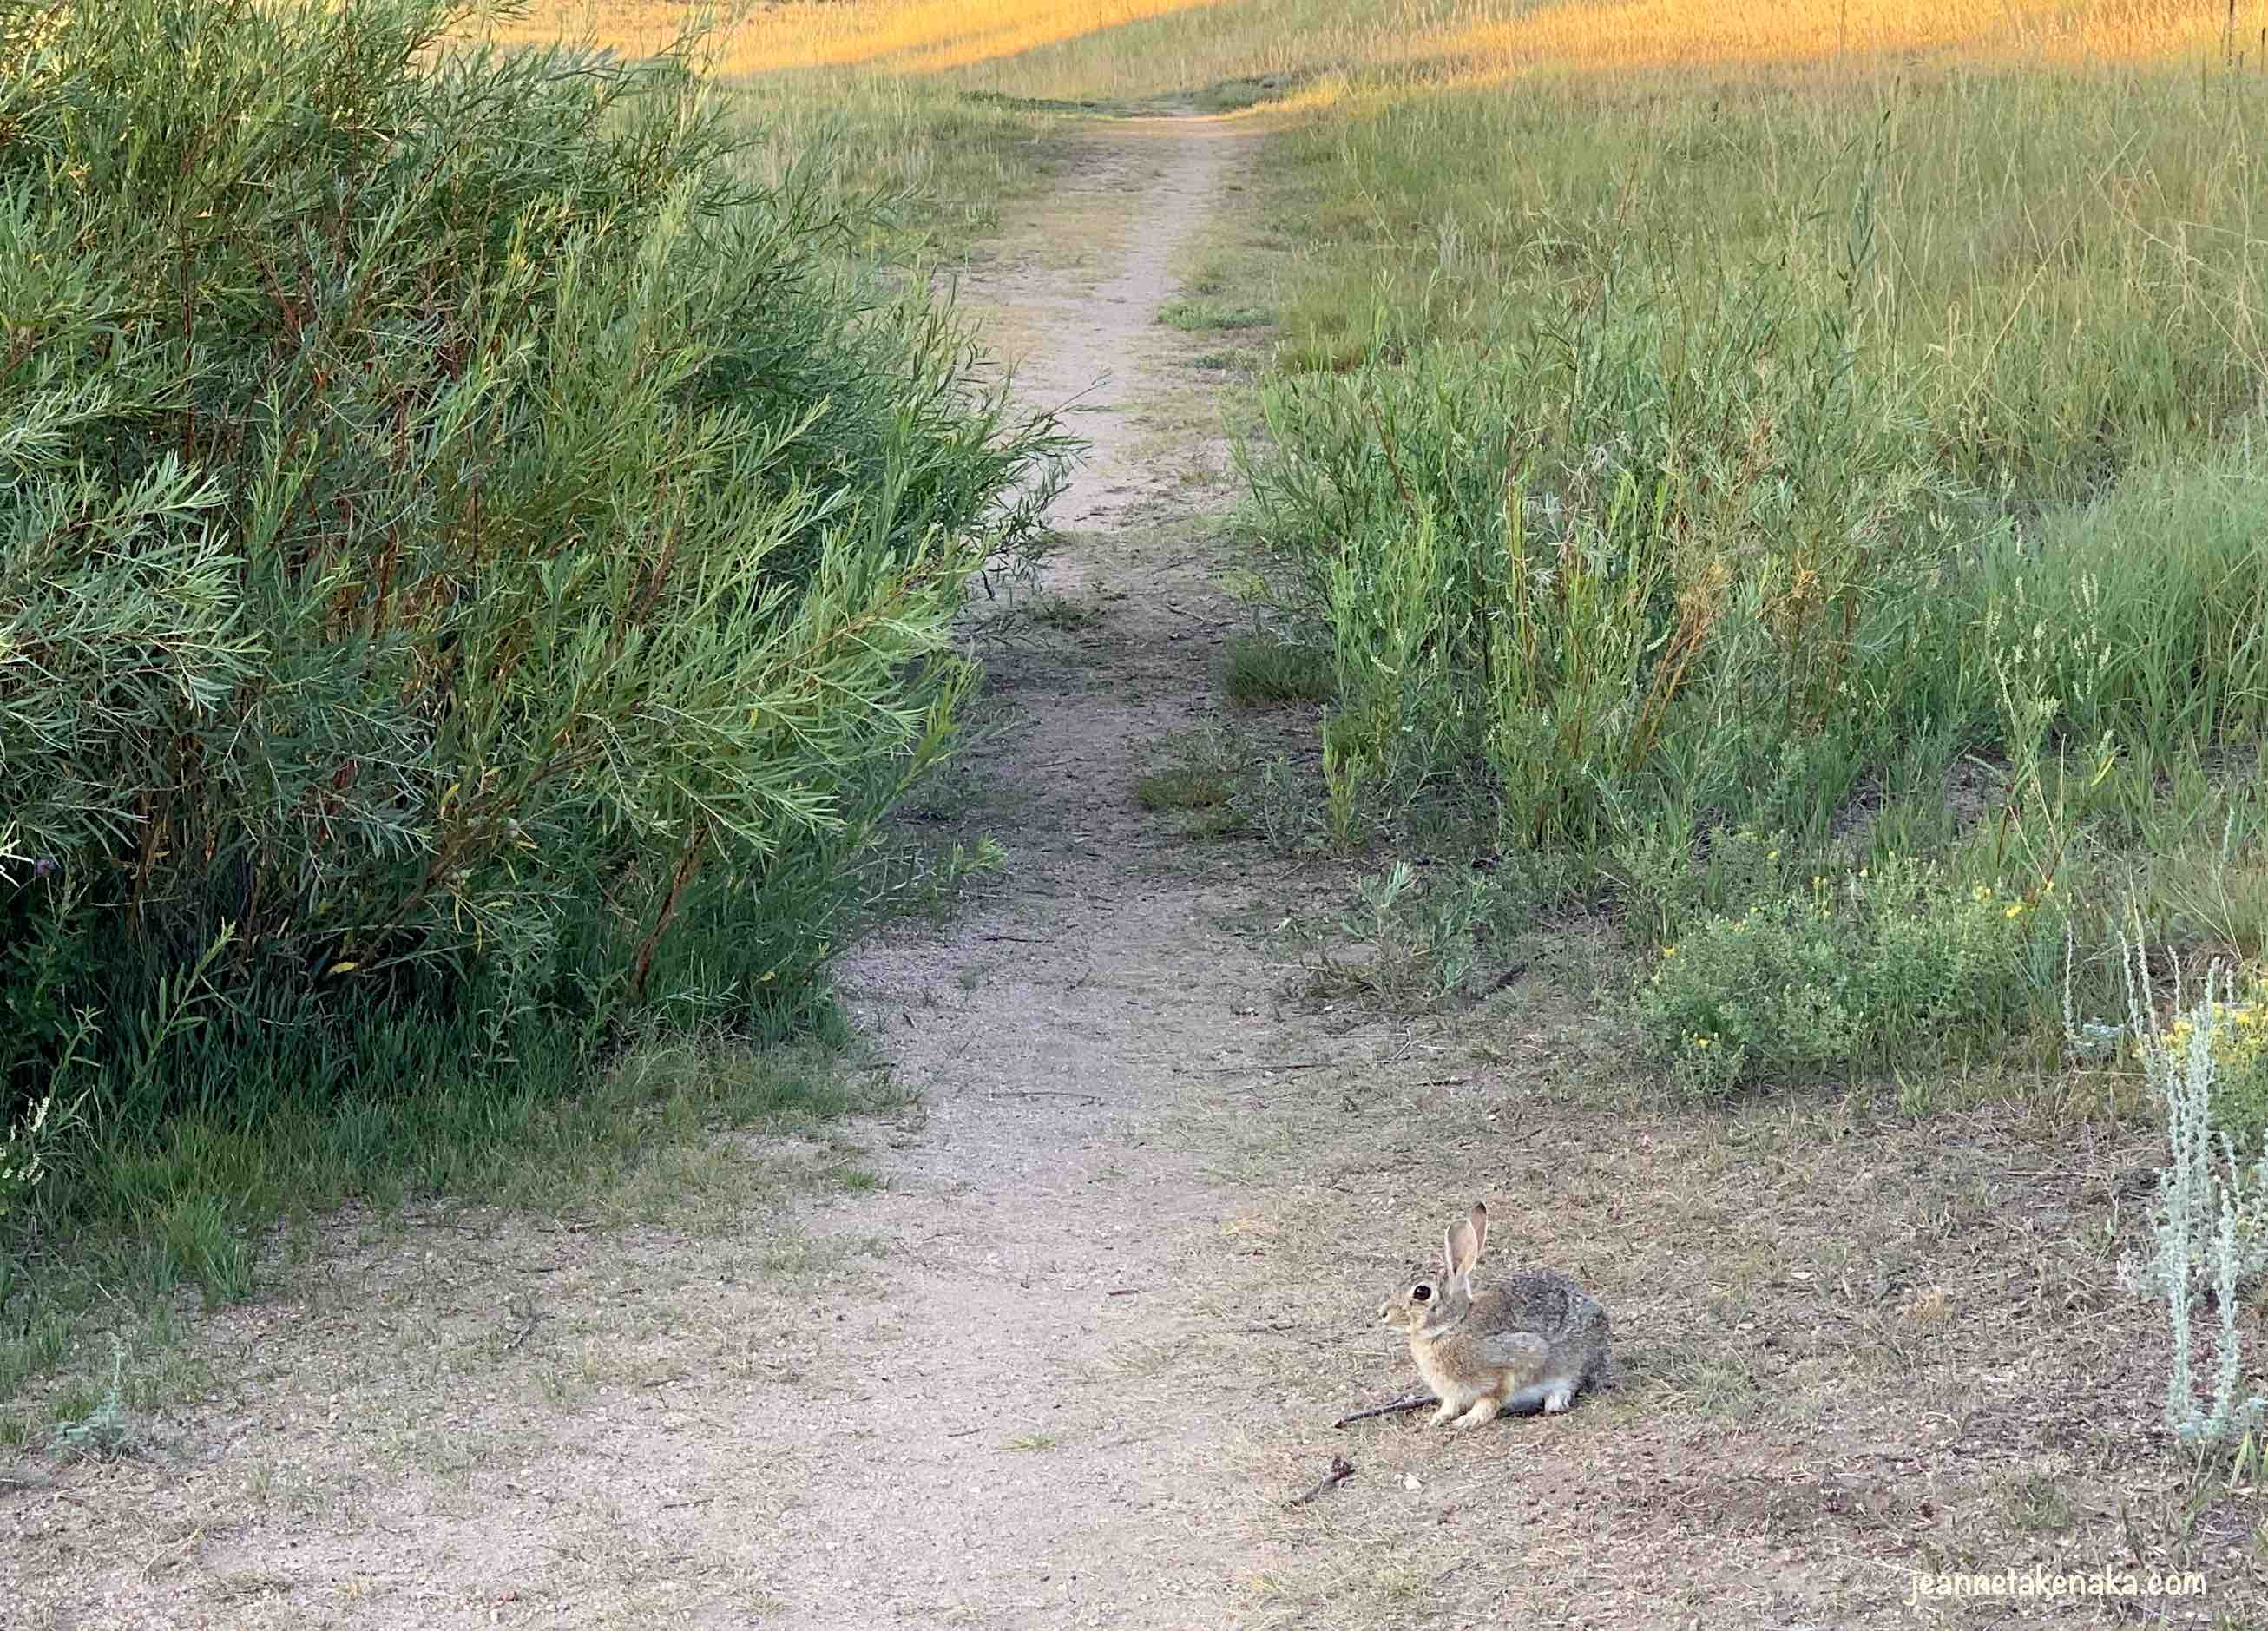 A rabbit sees the writer and prepares to flee in fear